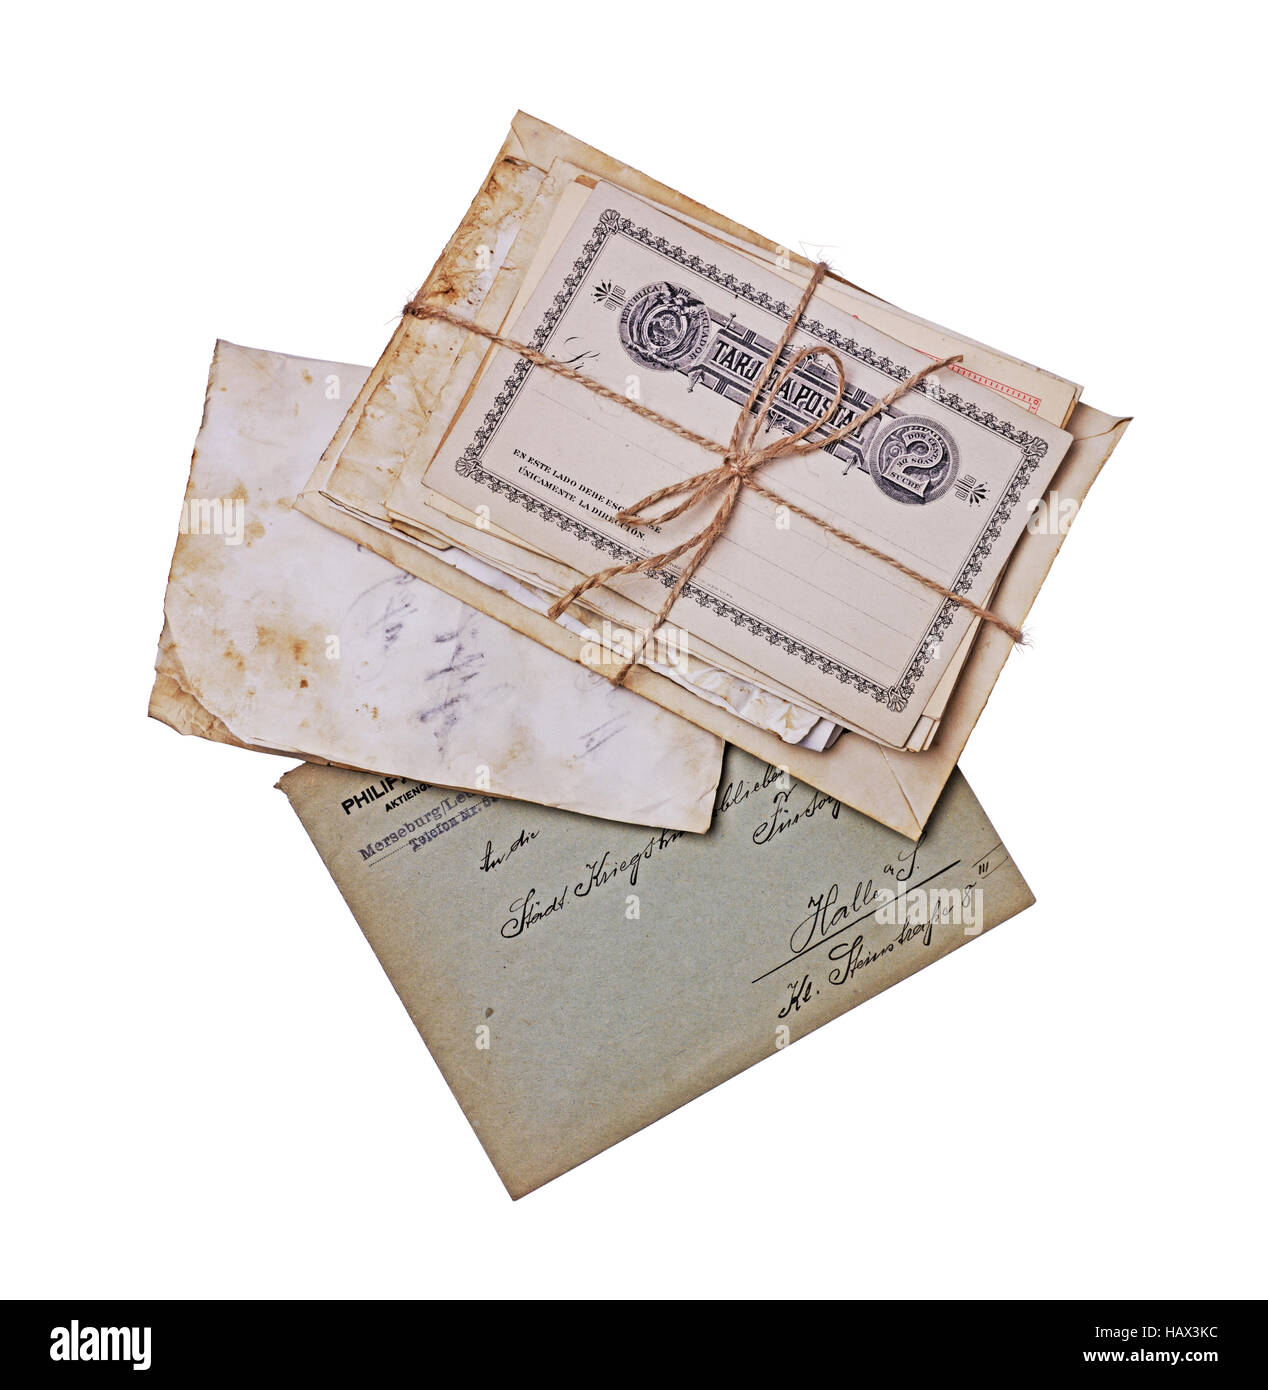 Vintage correspondence old postcards letters and envelopes vintage correspondence old postcards letters and envelopes isolated on white background thecheapjerseys Images